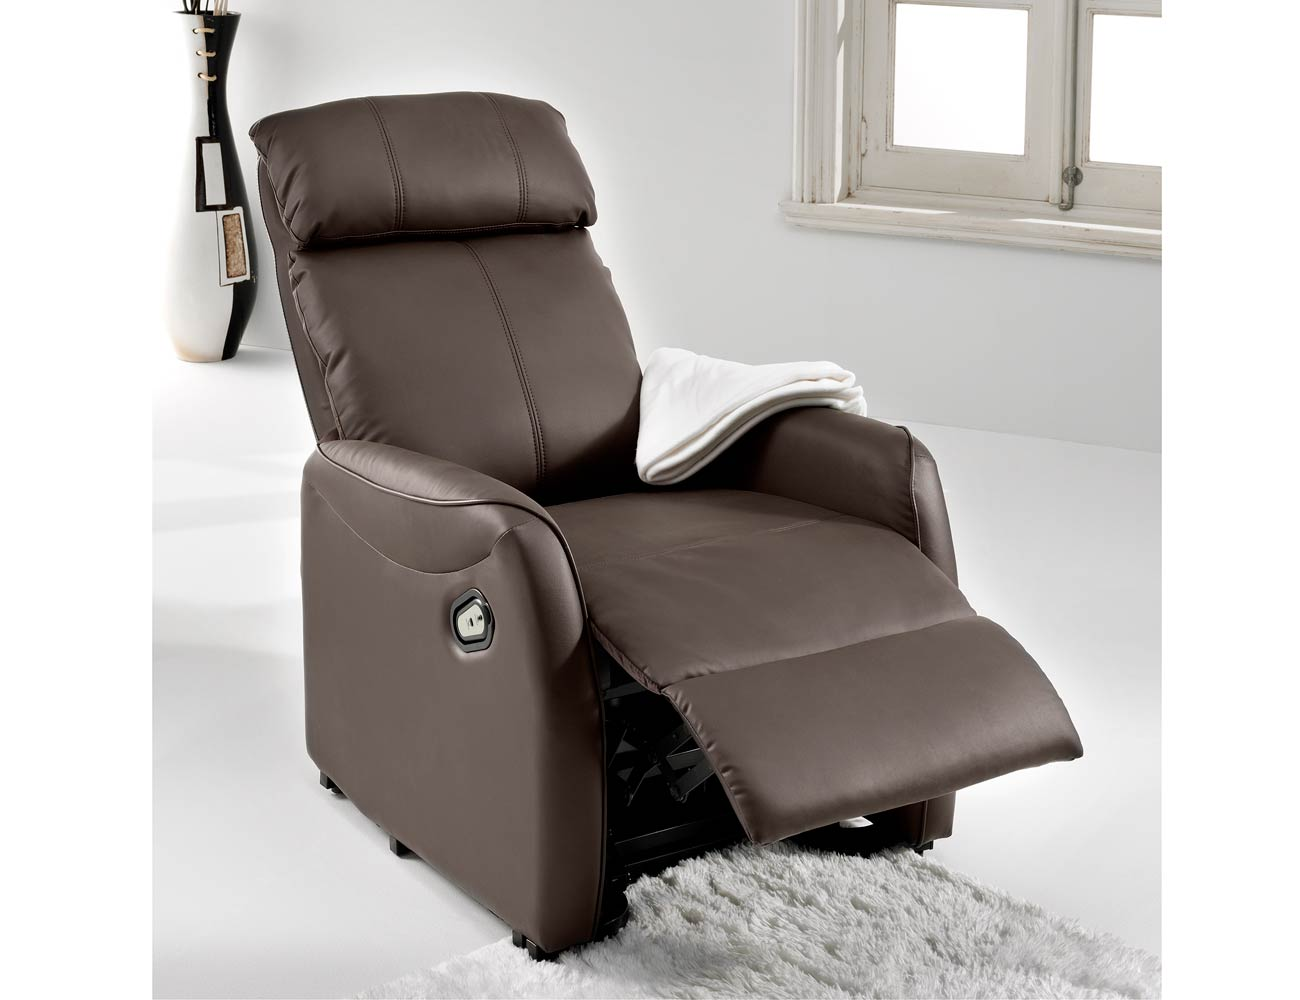 Sillon relax levanta personas power lift simil piel choco 2